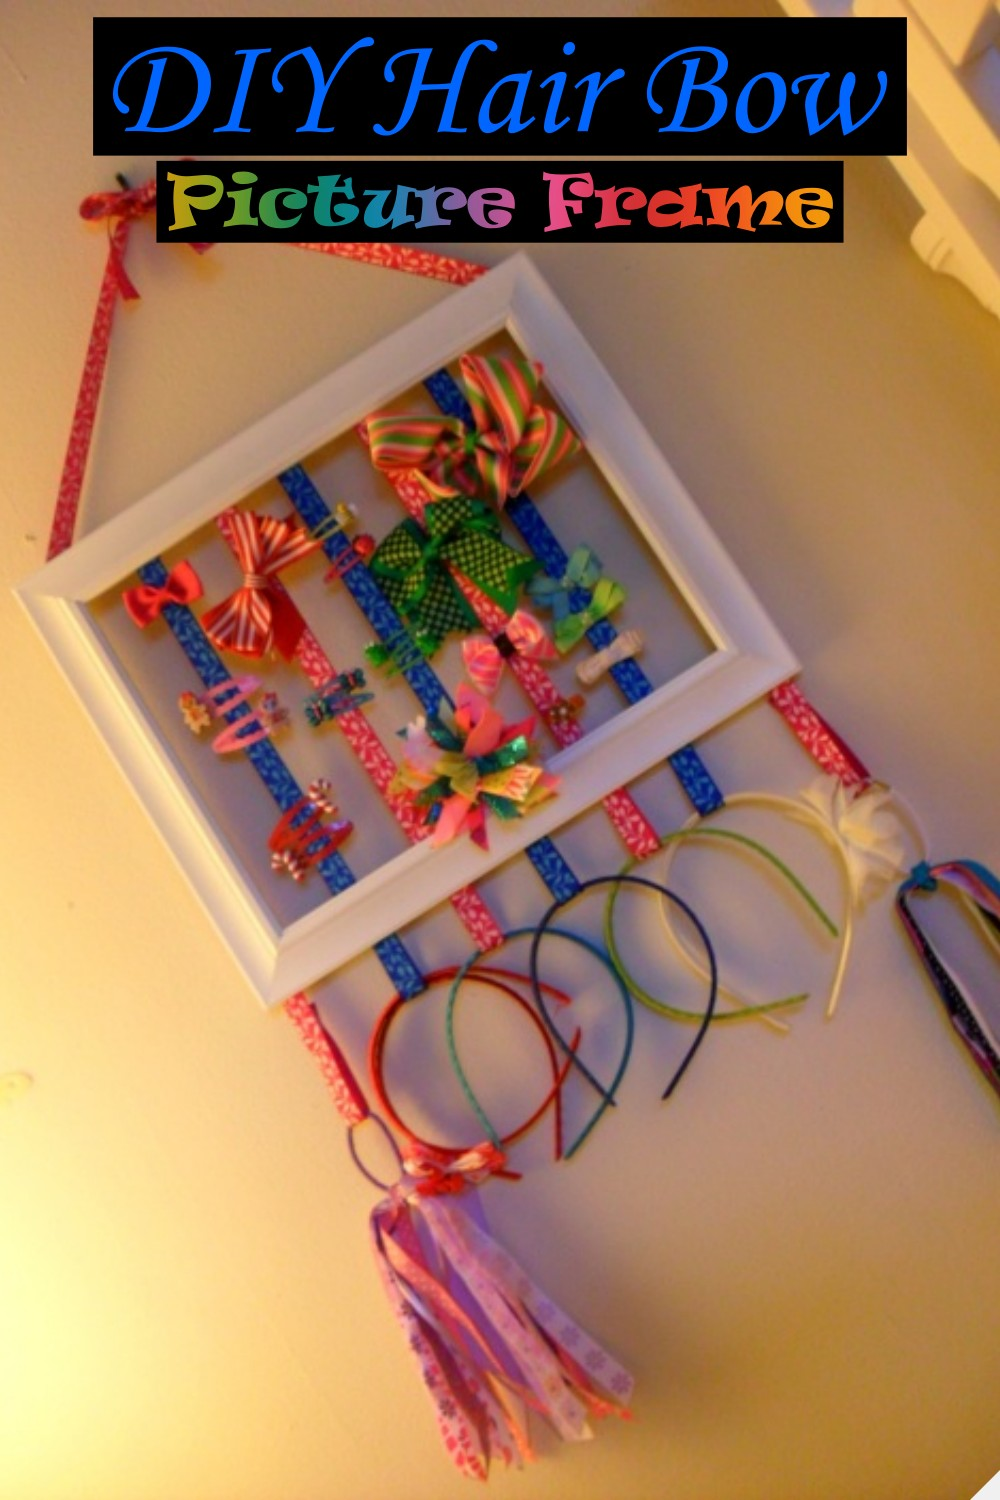 DIY Hair Bow Picture Frame